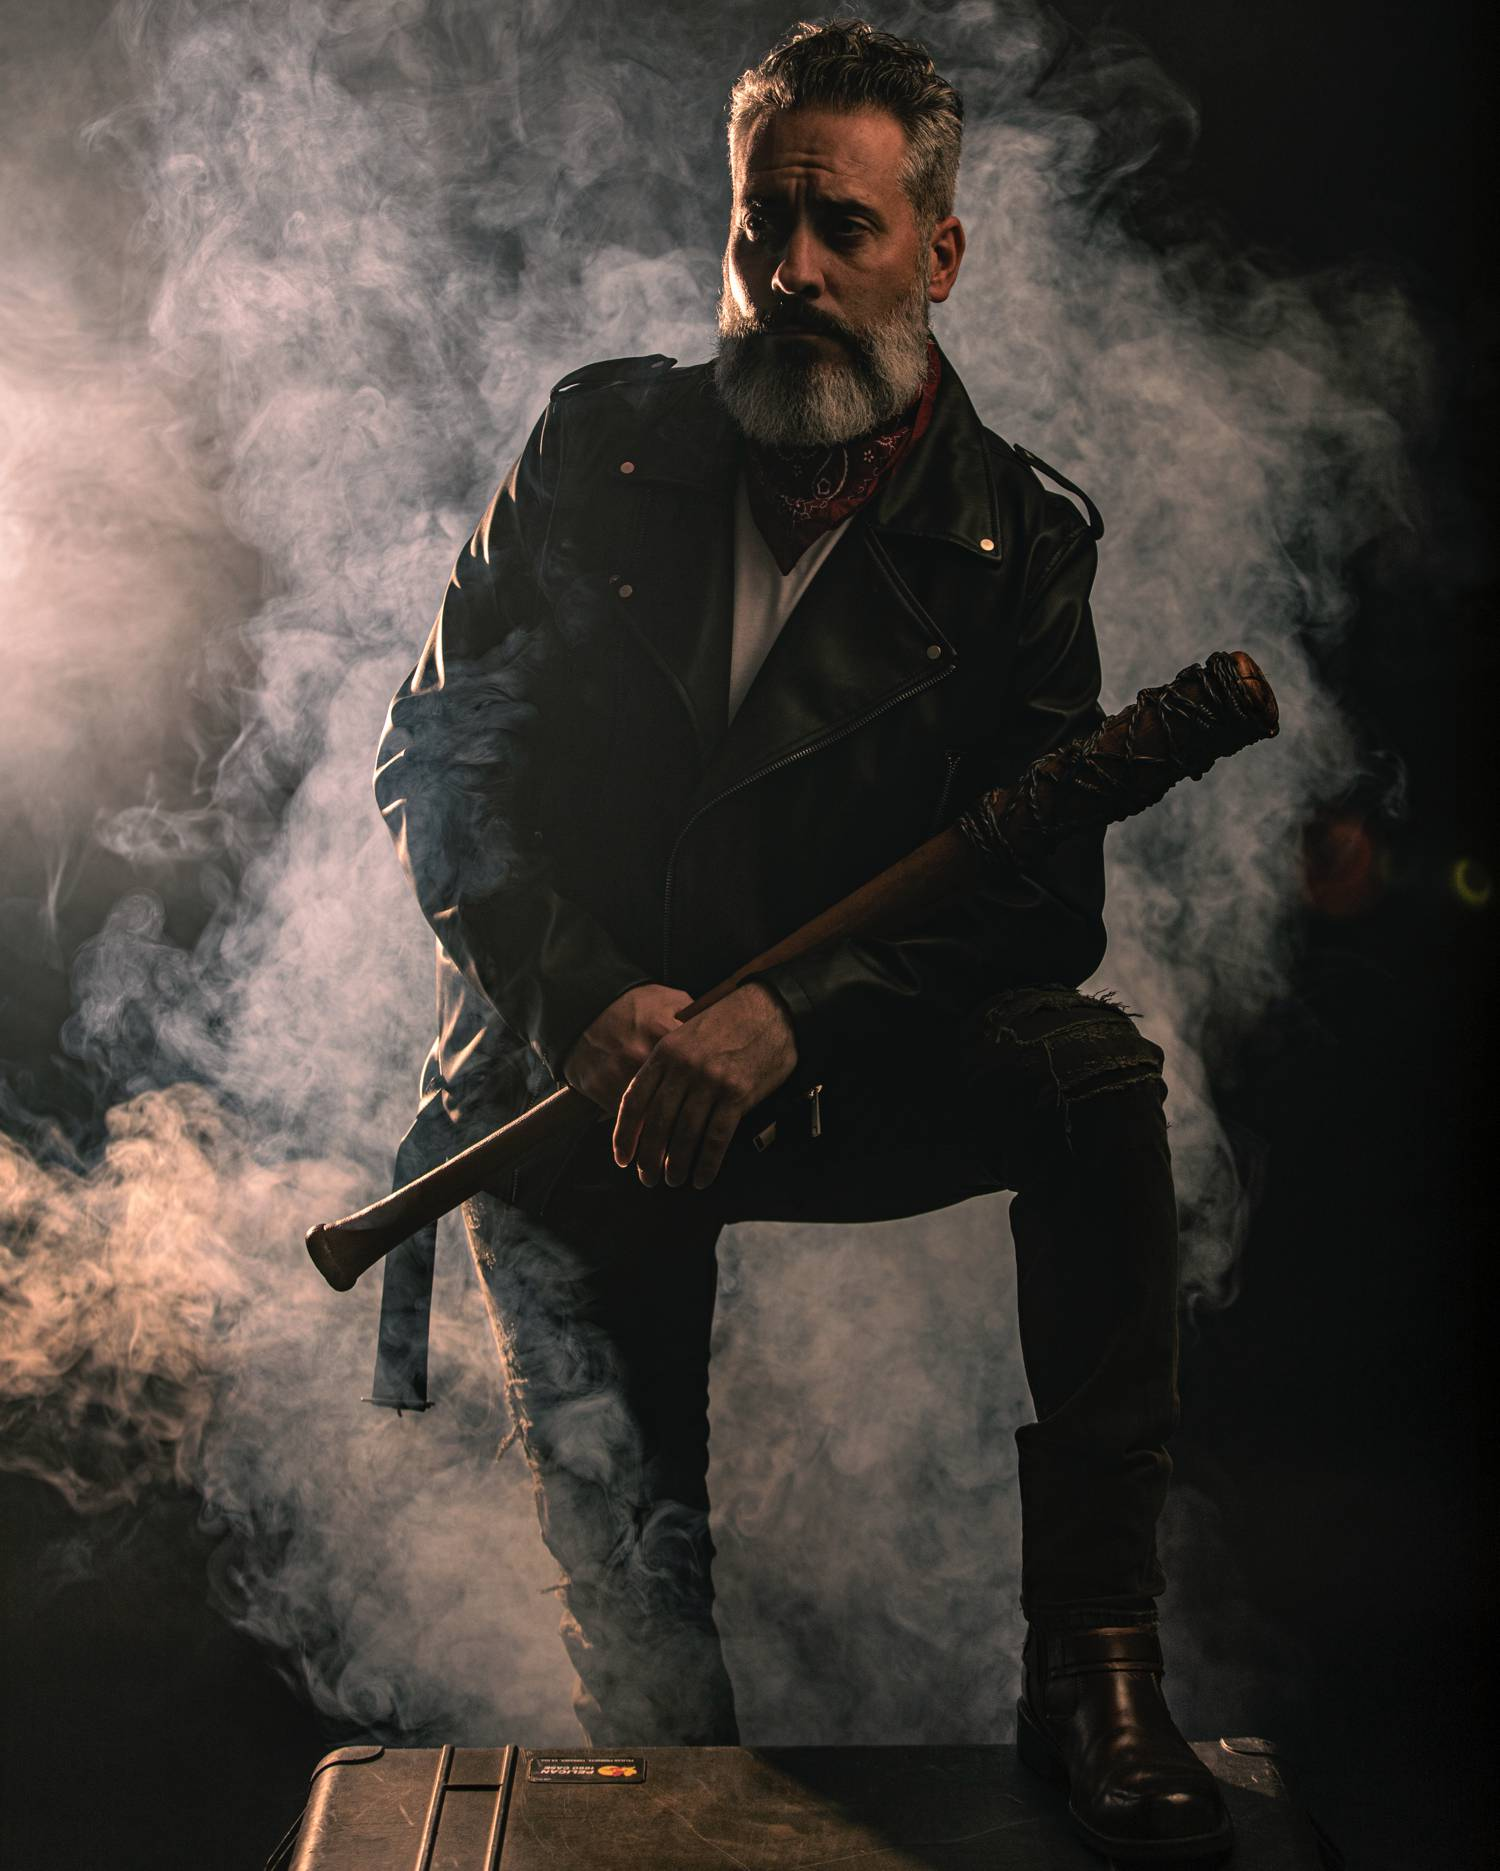 In this styled tribute photograph by Alexander Worth of Jawfox Photography, a man cosplays Negan from The Walking Dead, wearing a leather jacket and carrying the villain's barbed wire-wrapped bat, Lucille. Behind the model the air is full of dark smoke.